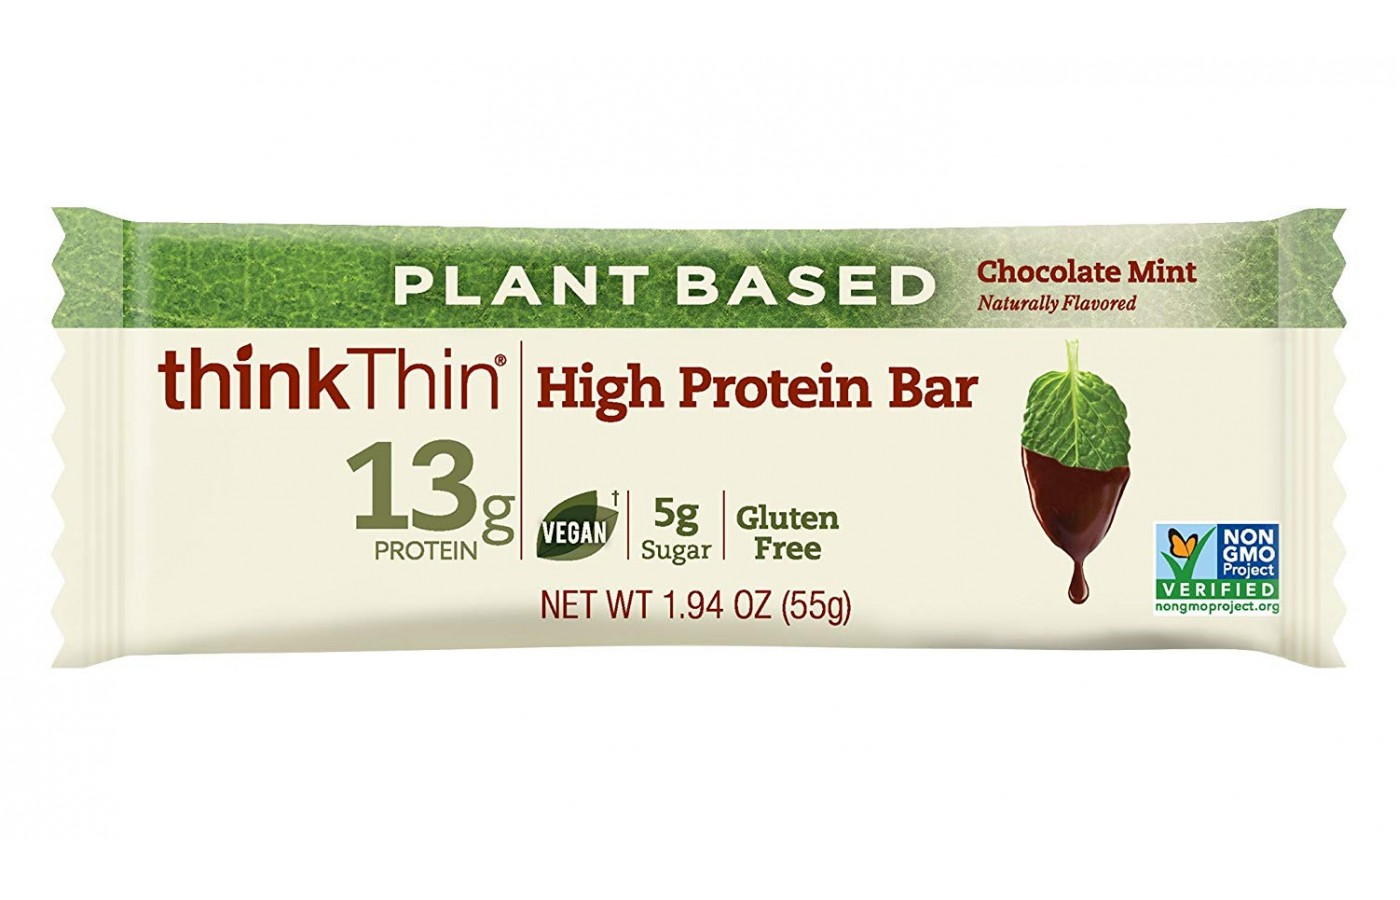 thinkThin Plant Based